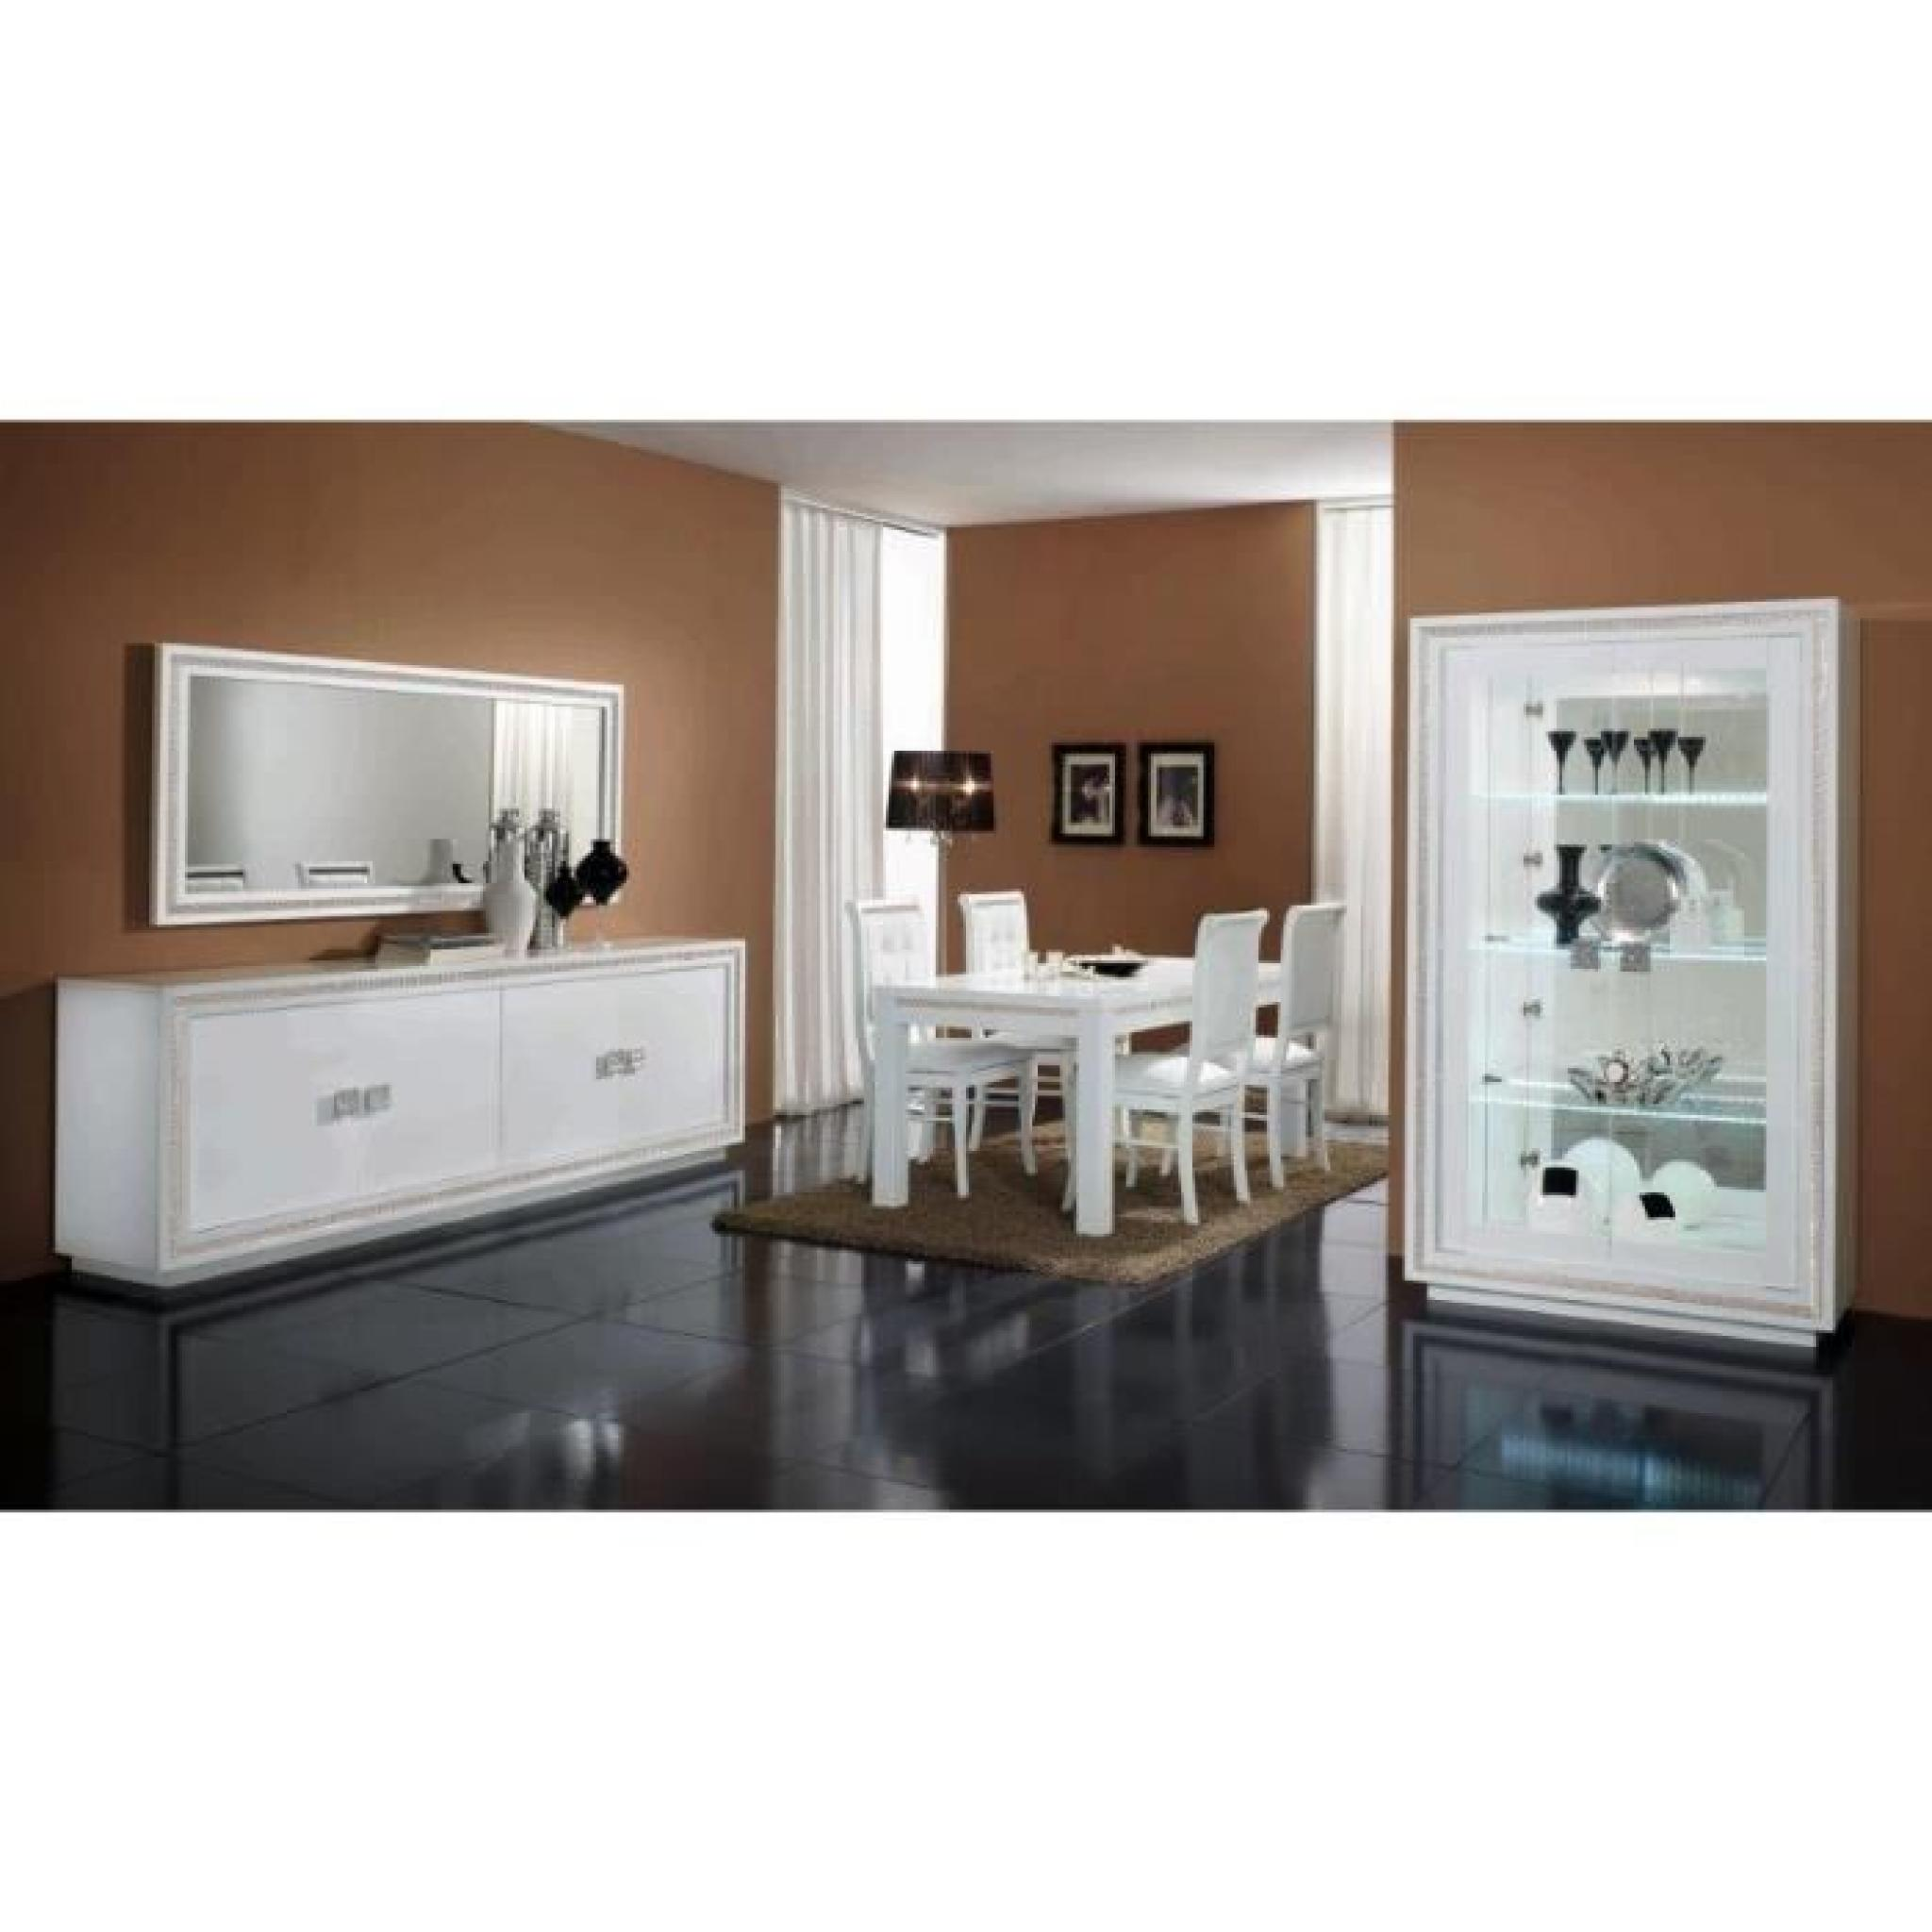 prestige laque blanche ensemble salle a manger vitrine 2 portes bahut 4 portes miroir 143. Black Bedroom Furniture Sets. Home Design Ideas